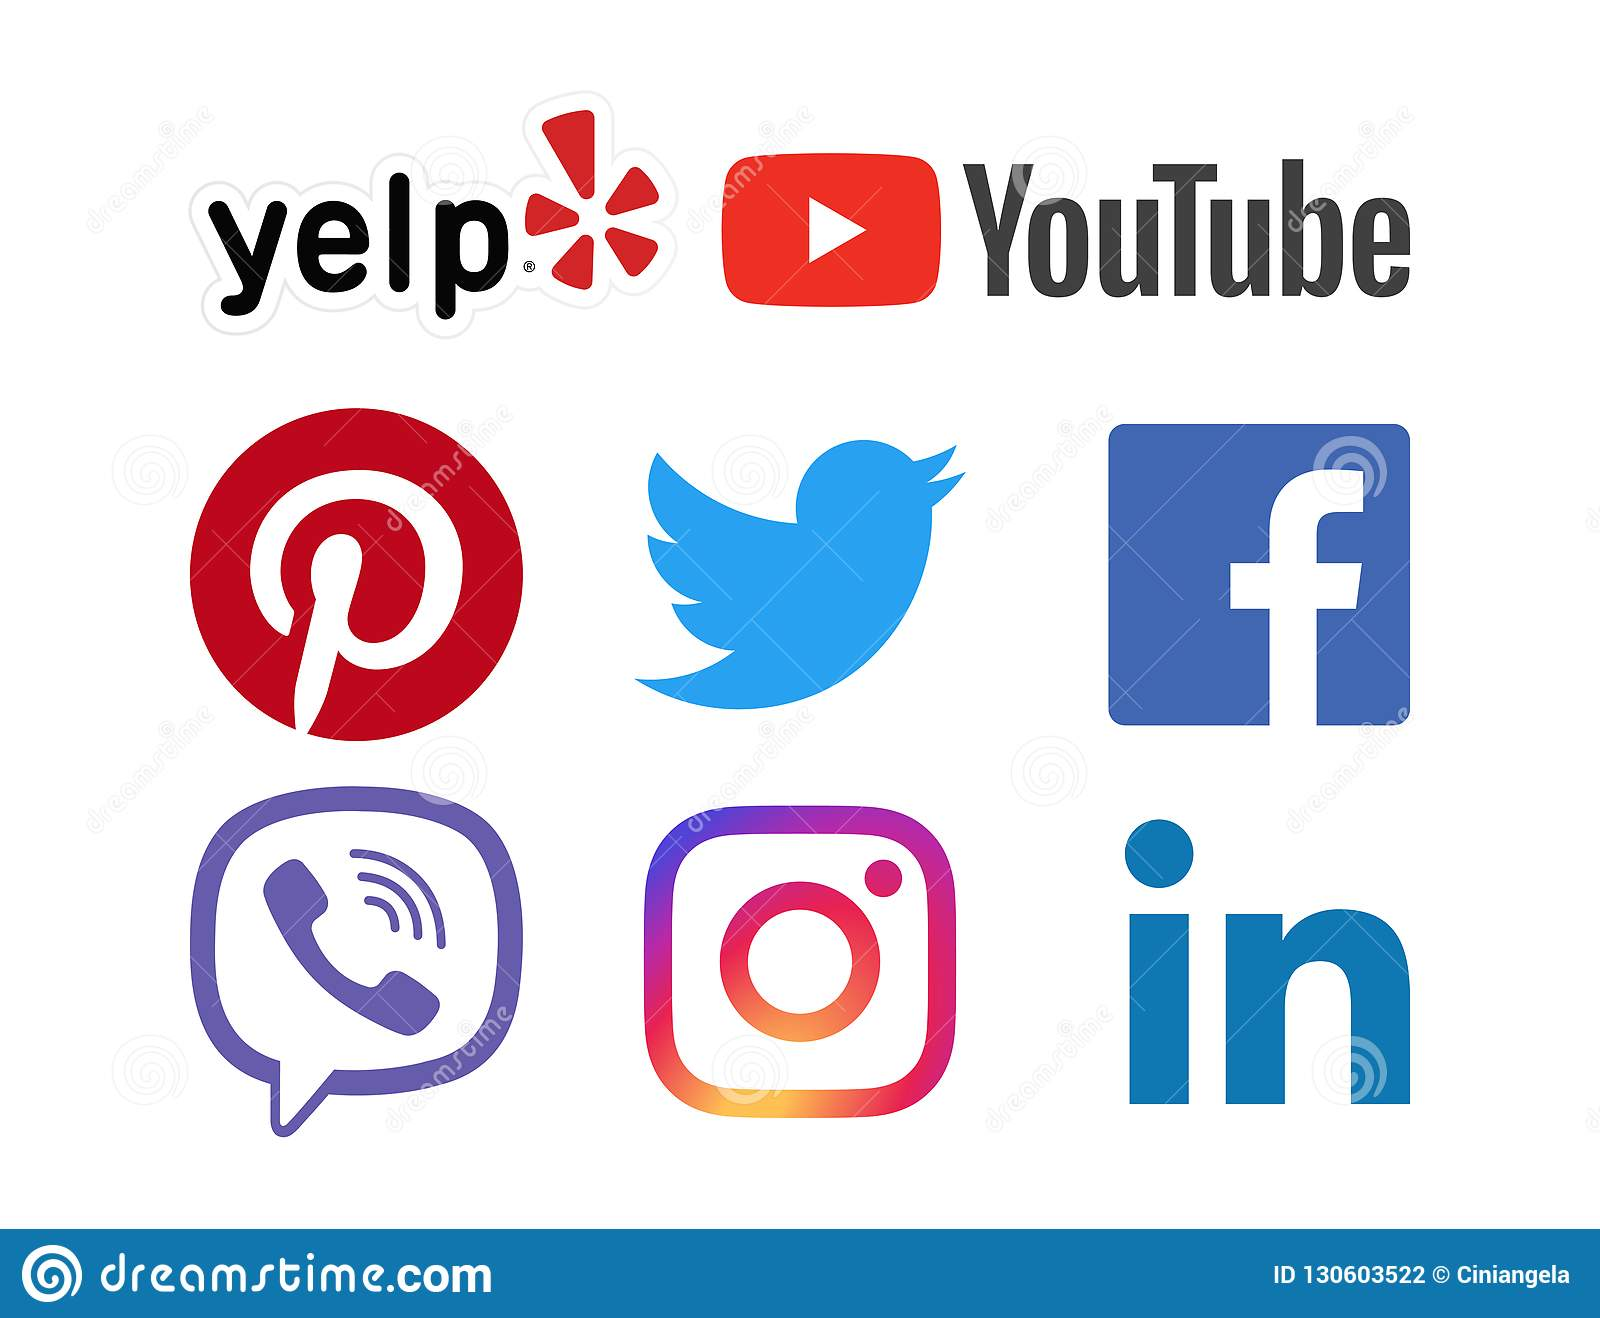 a7086e918d7a Social Media Icon Set with Facebook, Yelp, Instagram, Youtube, Twitter,  pinterest, Linkedin, Viber Icons